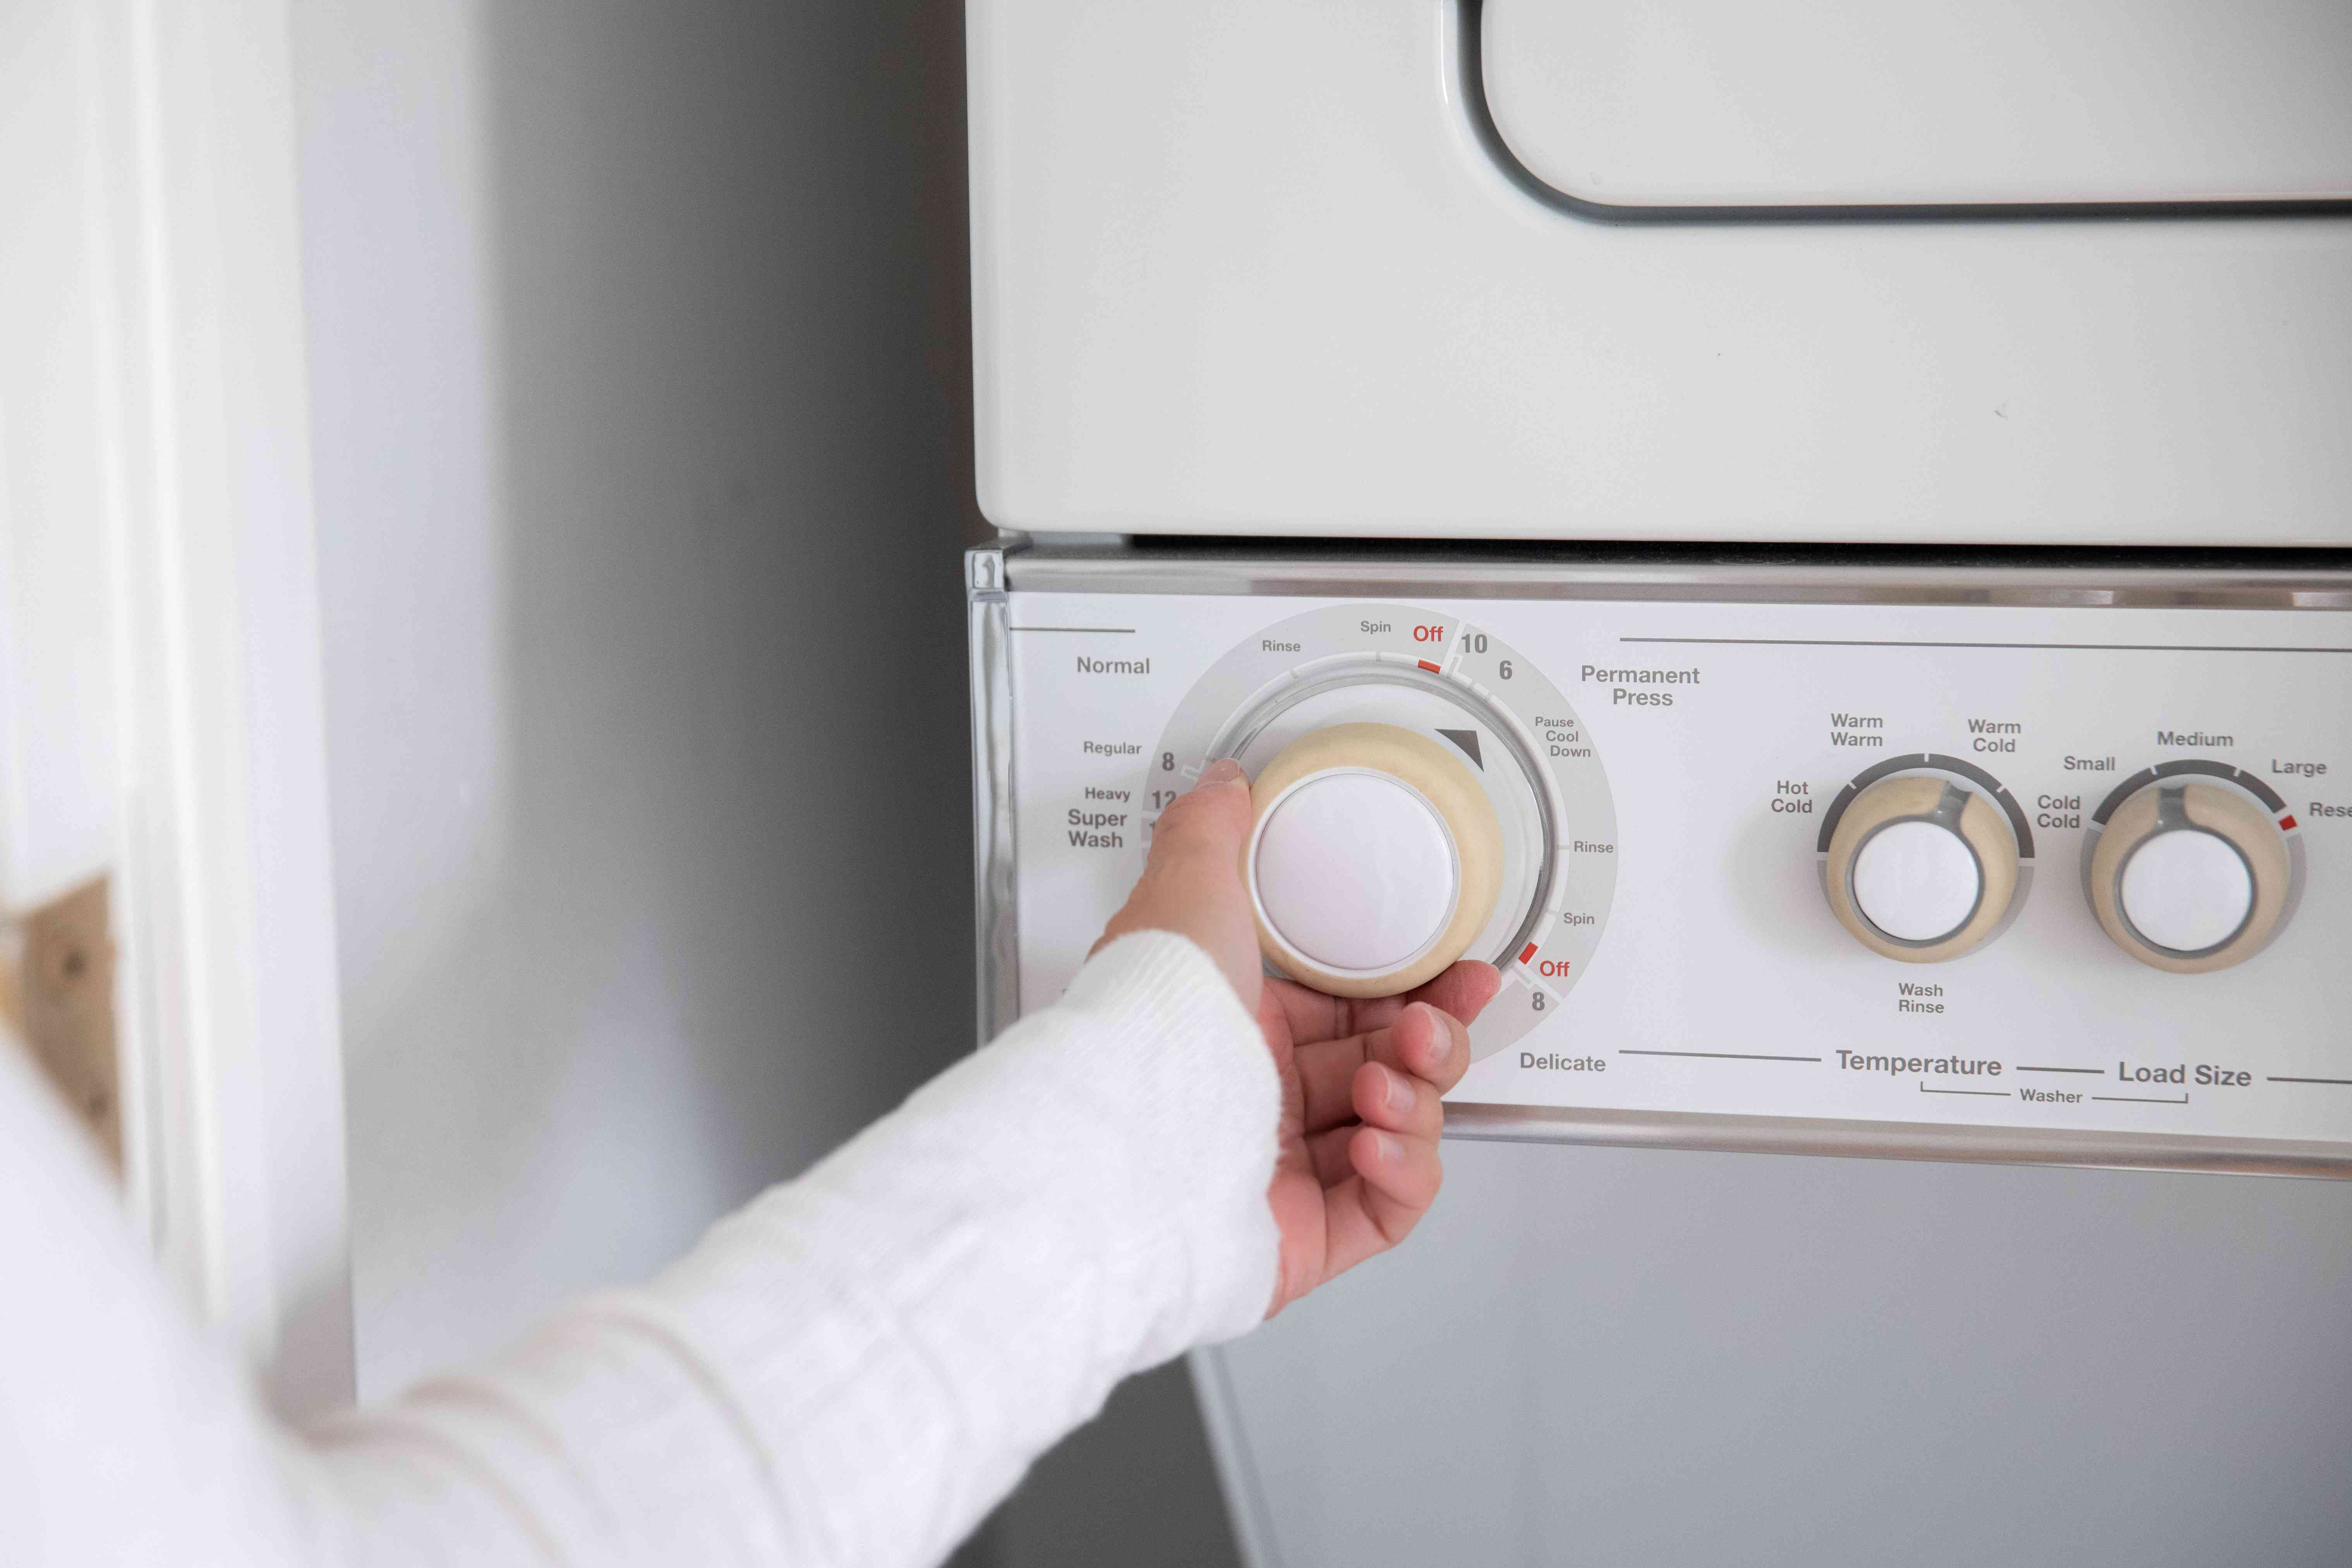 Someone selecting a washer temperature